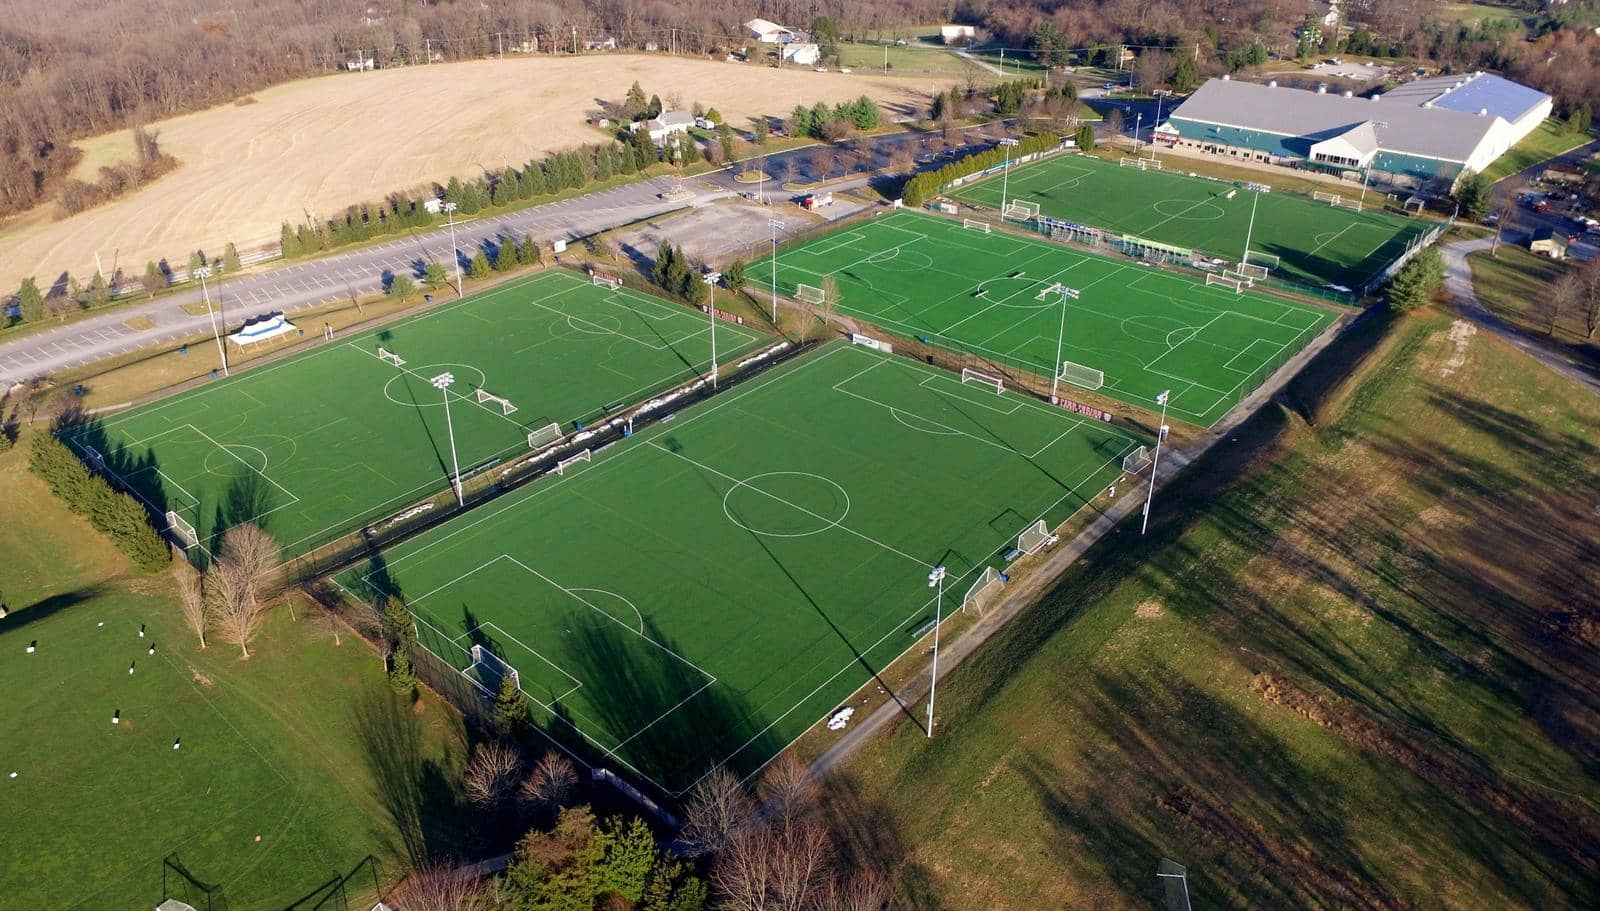 USTC Artificial Turf Outdoor Fields, Downingtown, PA